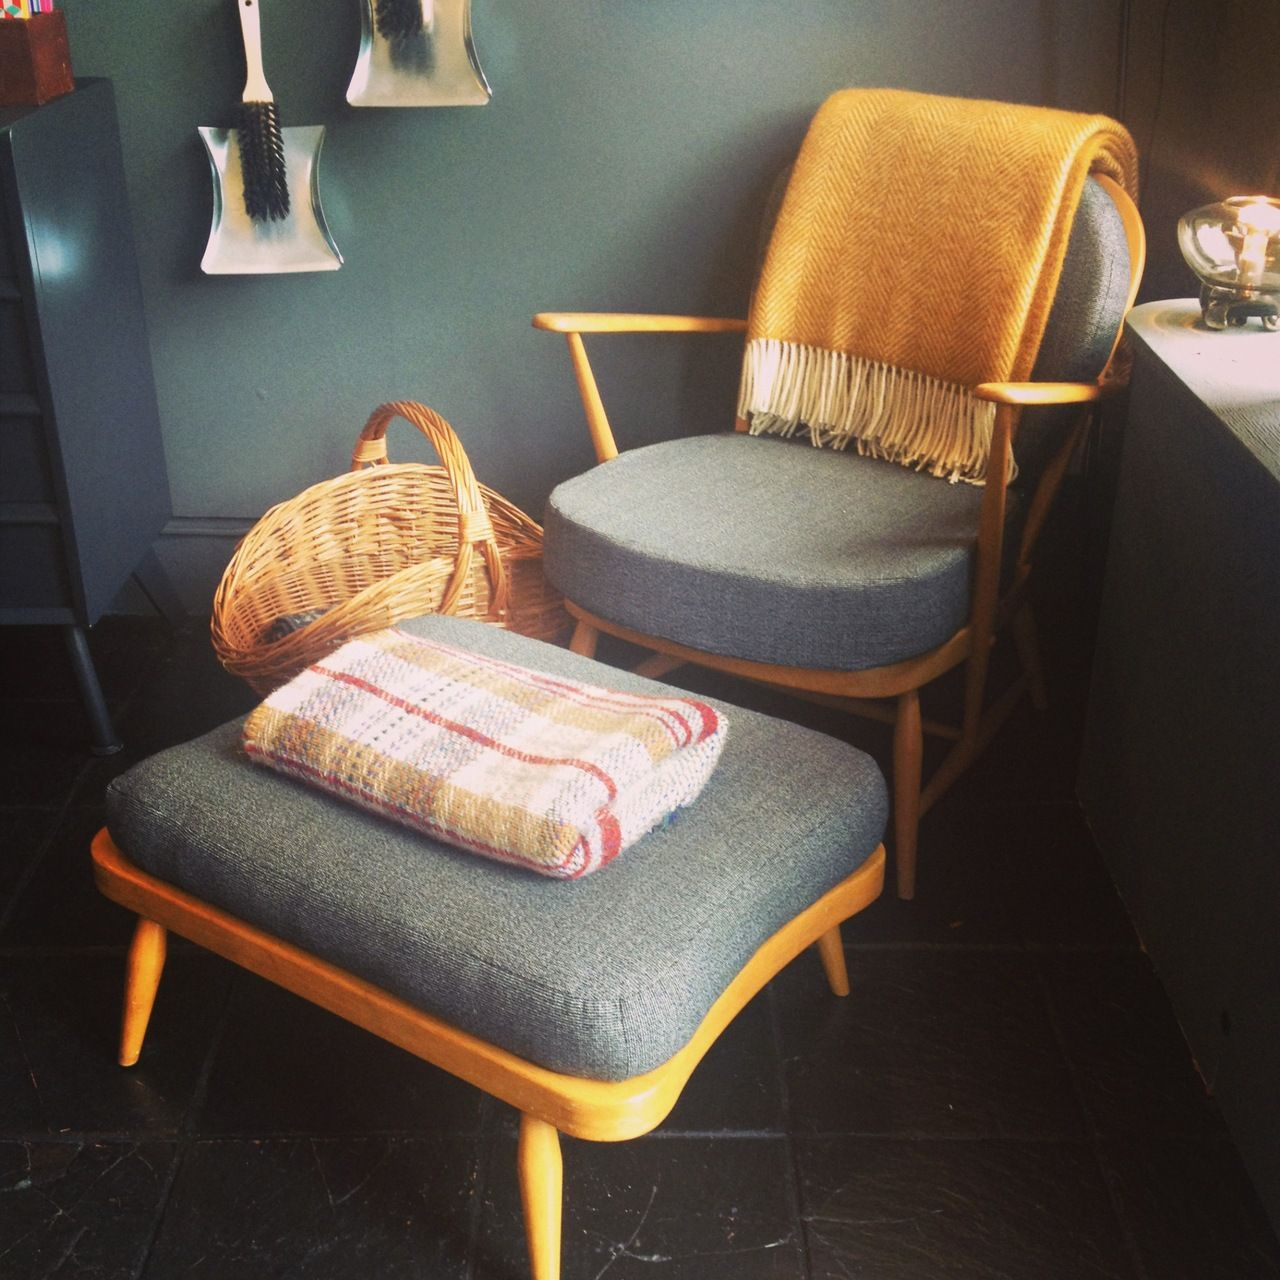 Reconditioned Vintage Ercol Chair And Footstool